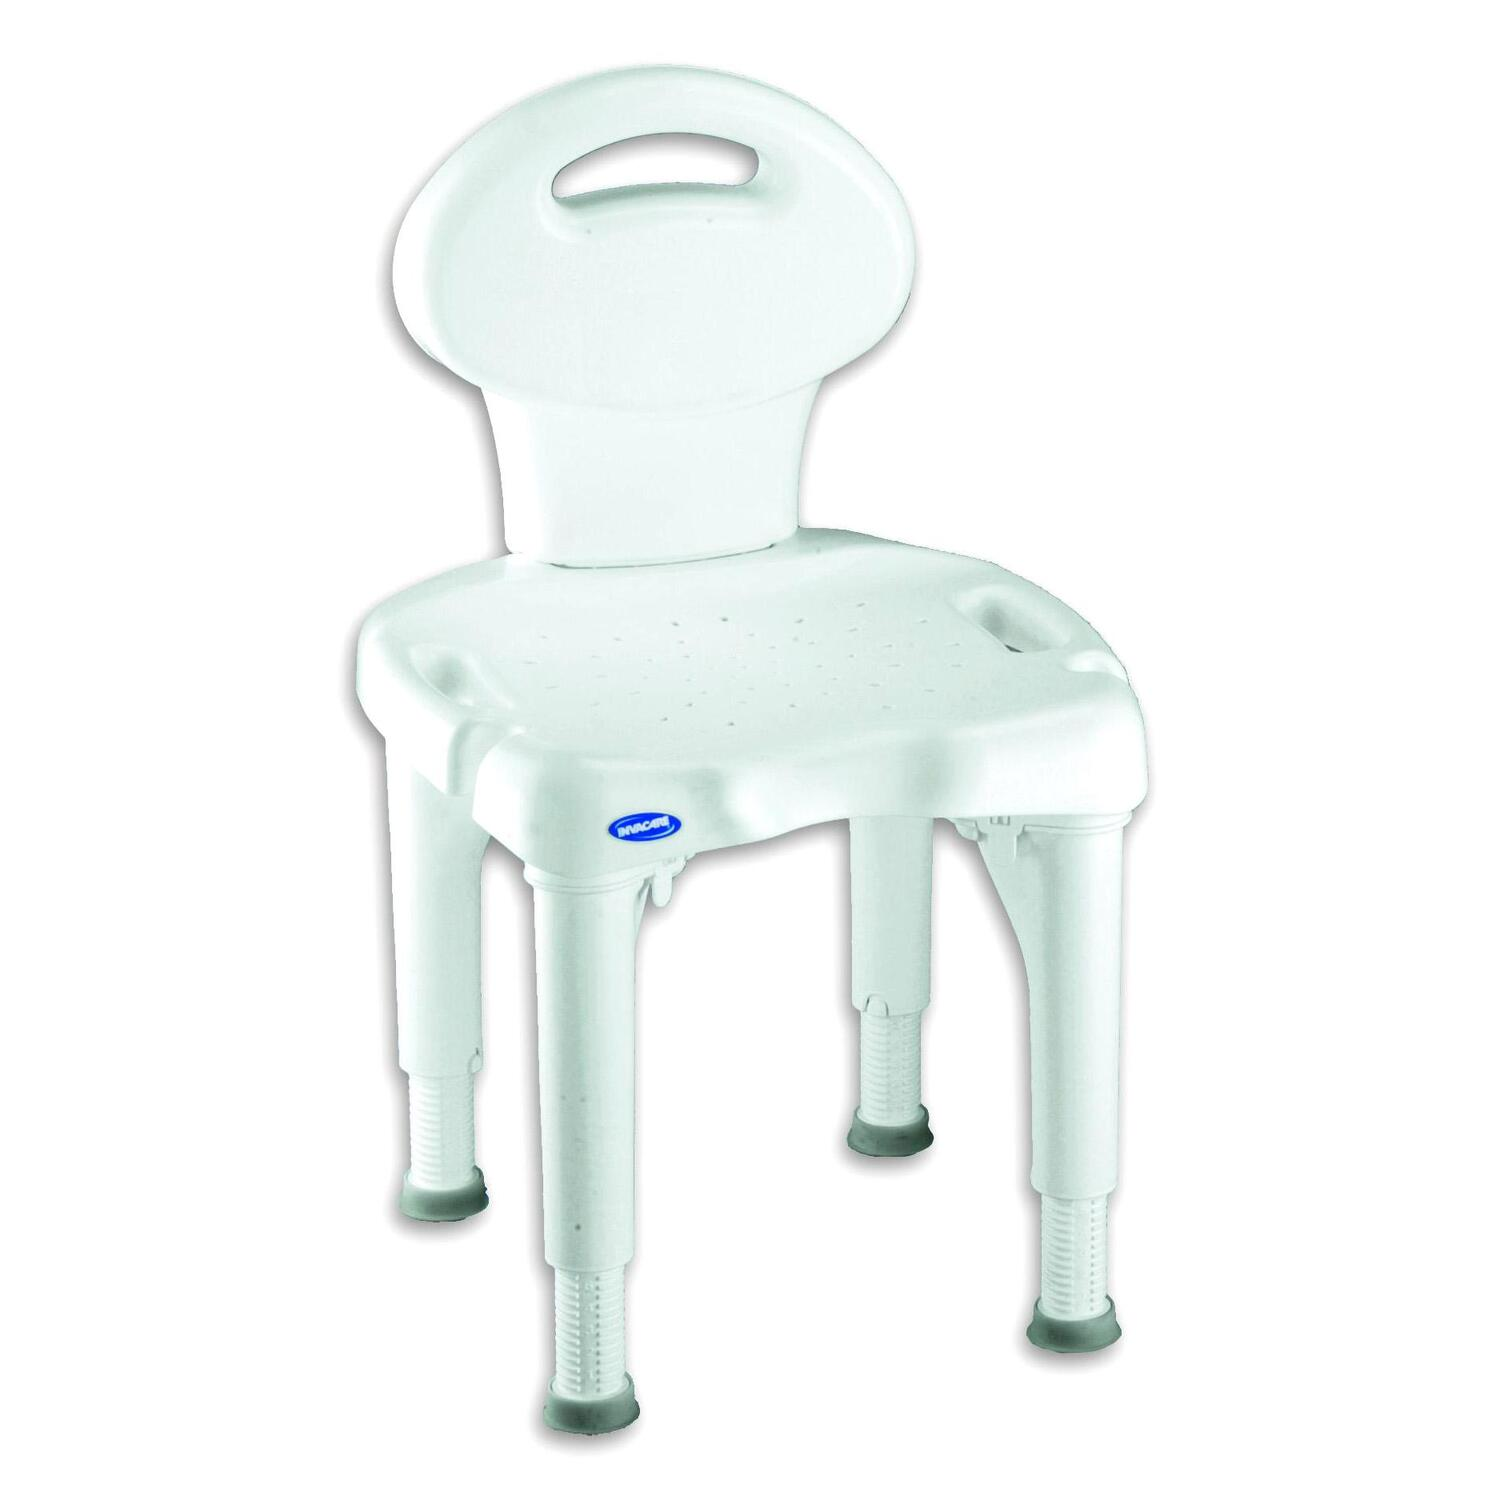 invacare shower chair reclining game with microban 34 09 74 30